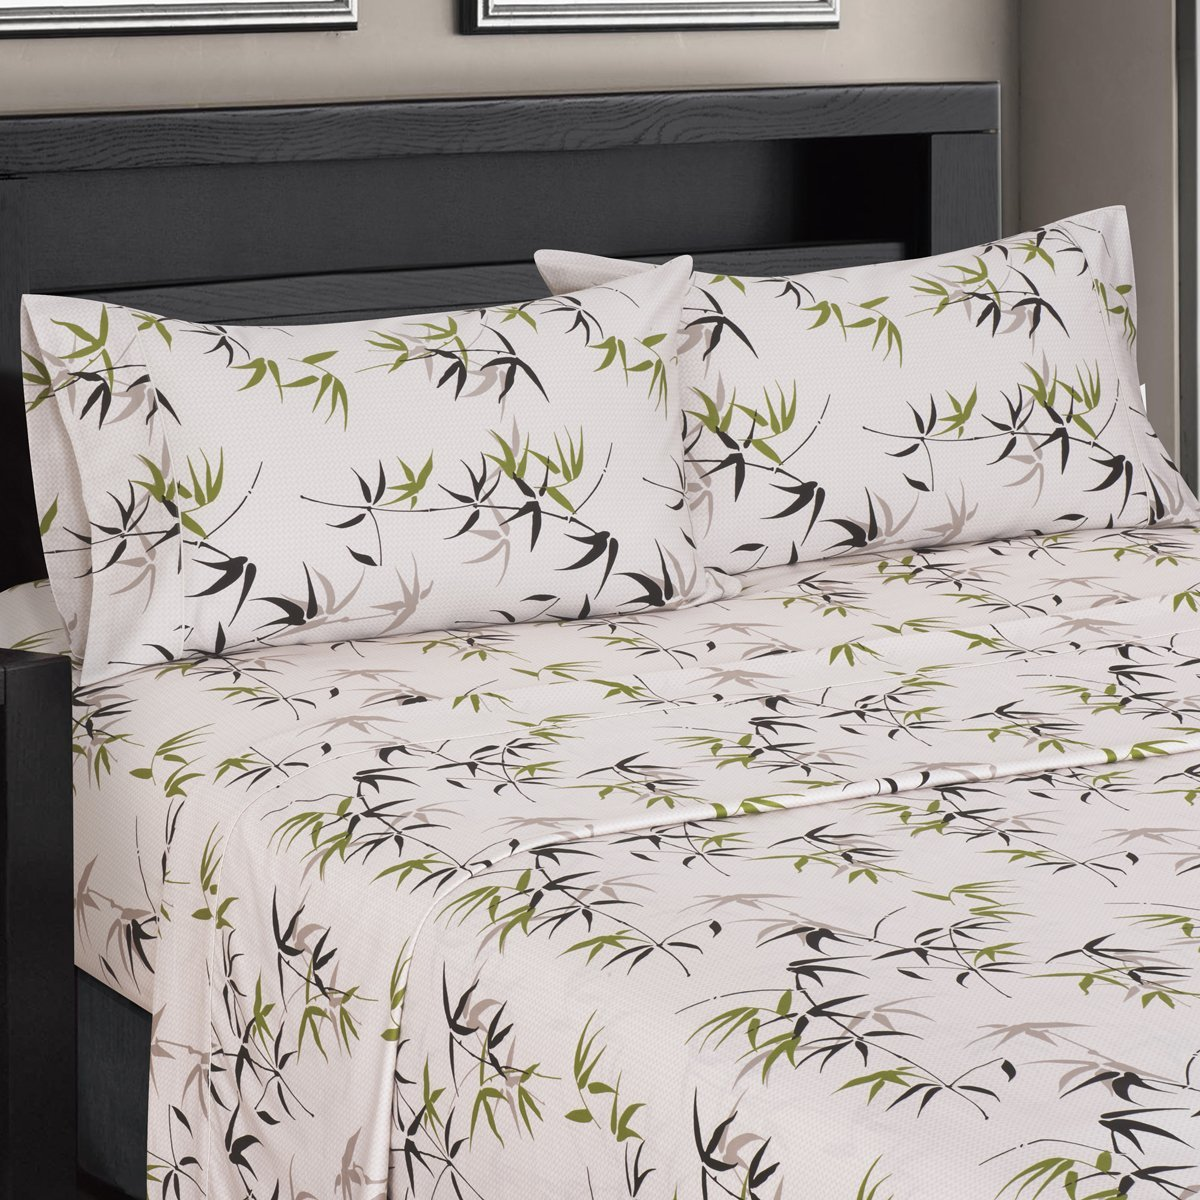 Fern Floral Sateen Cotton Sheets, 4pc Queen Bed Sheet Set 100% Cotton, Superior Sateen Weave, Silky Soft, Deep Pocket, Modern Reactive Print, 300 Thread Count